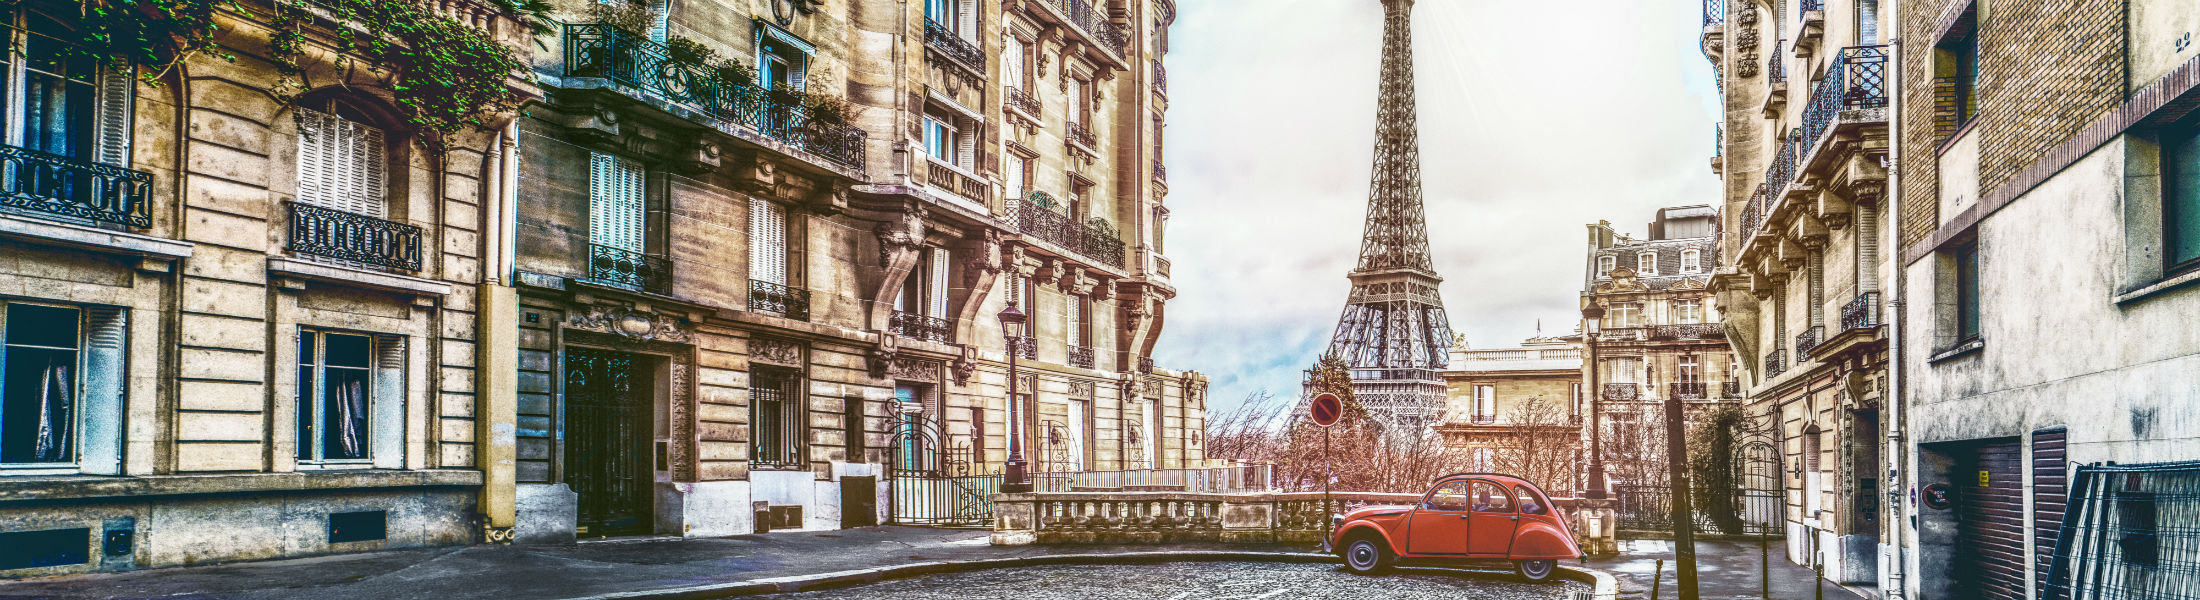 Paris street with Eiffel tower